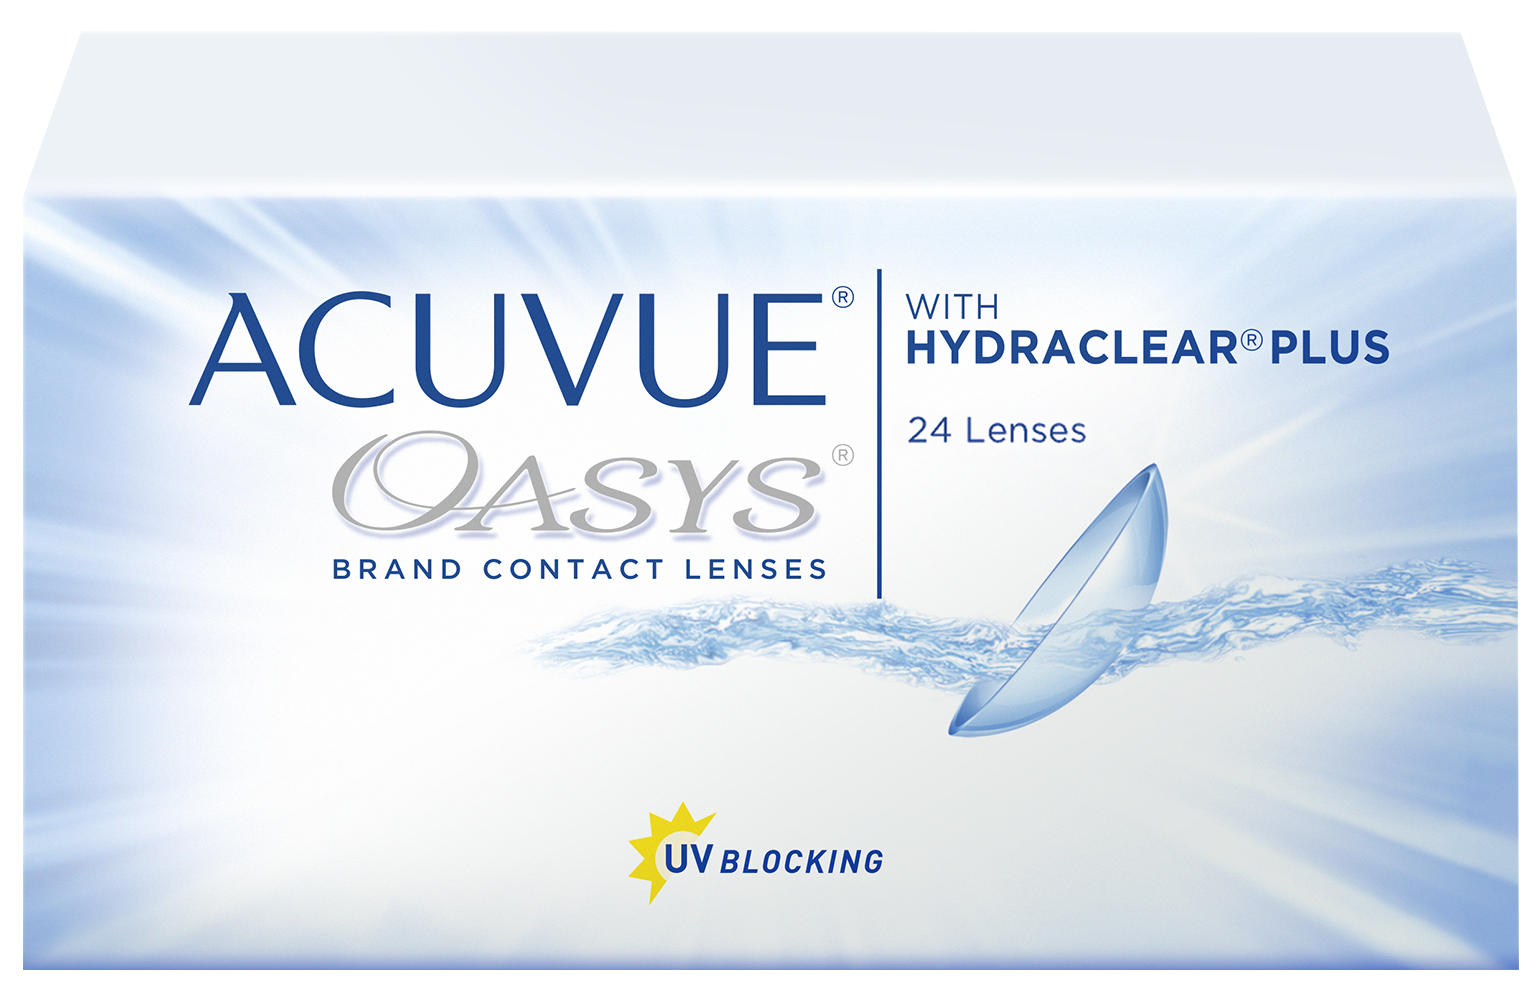 Acuvue hydraclear oasys